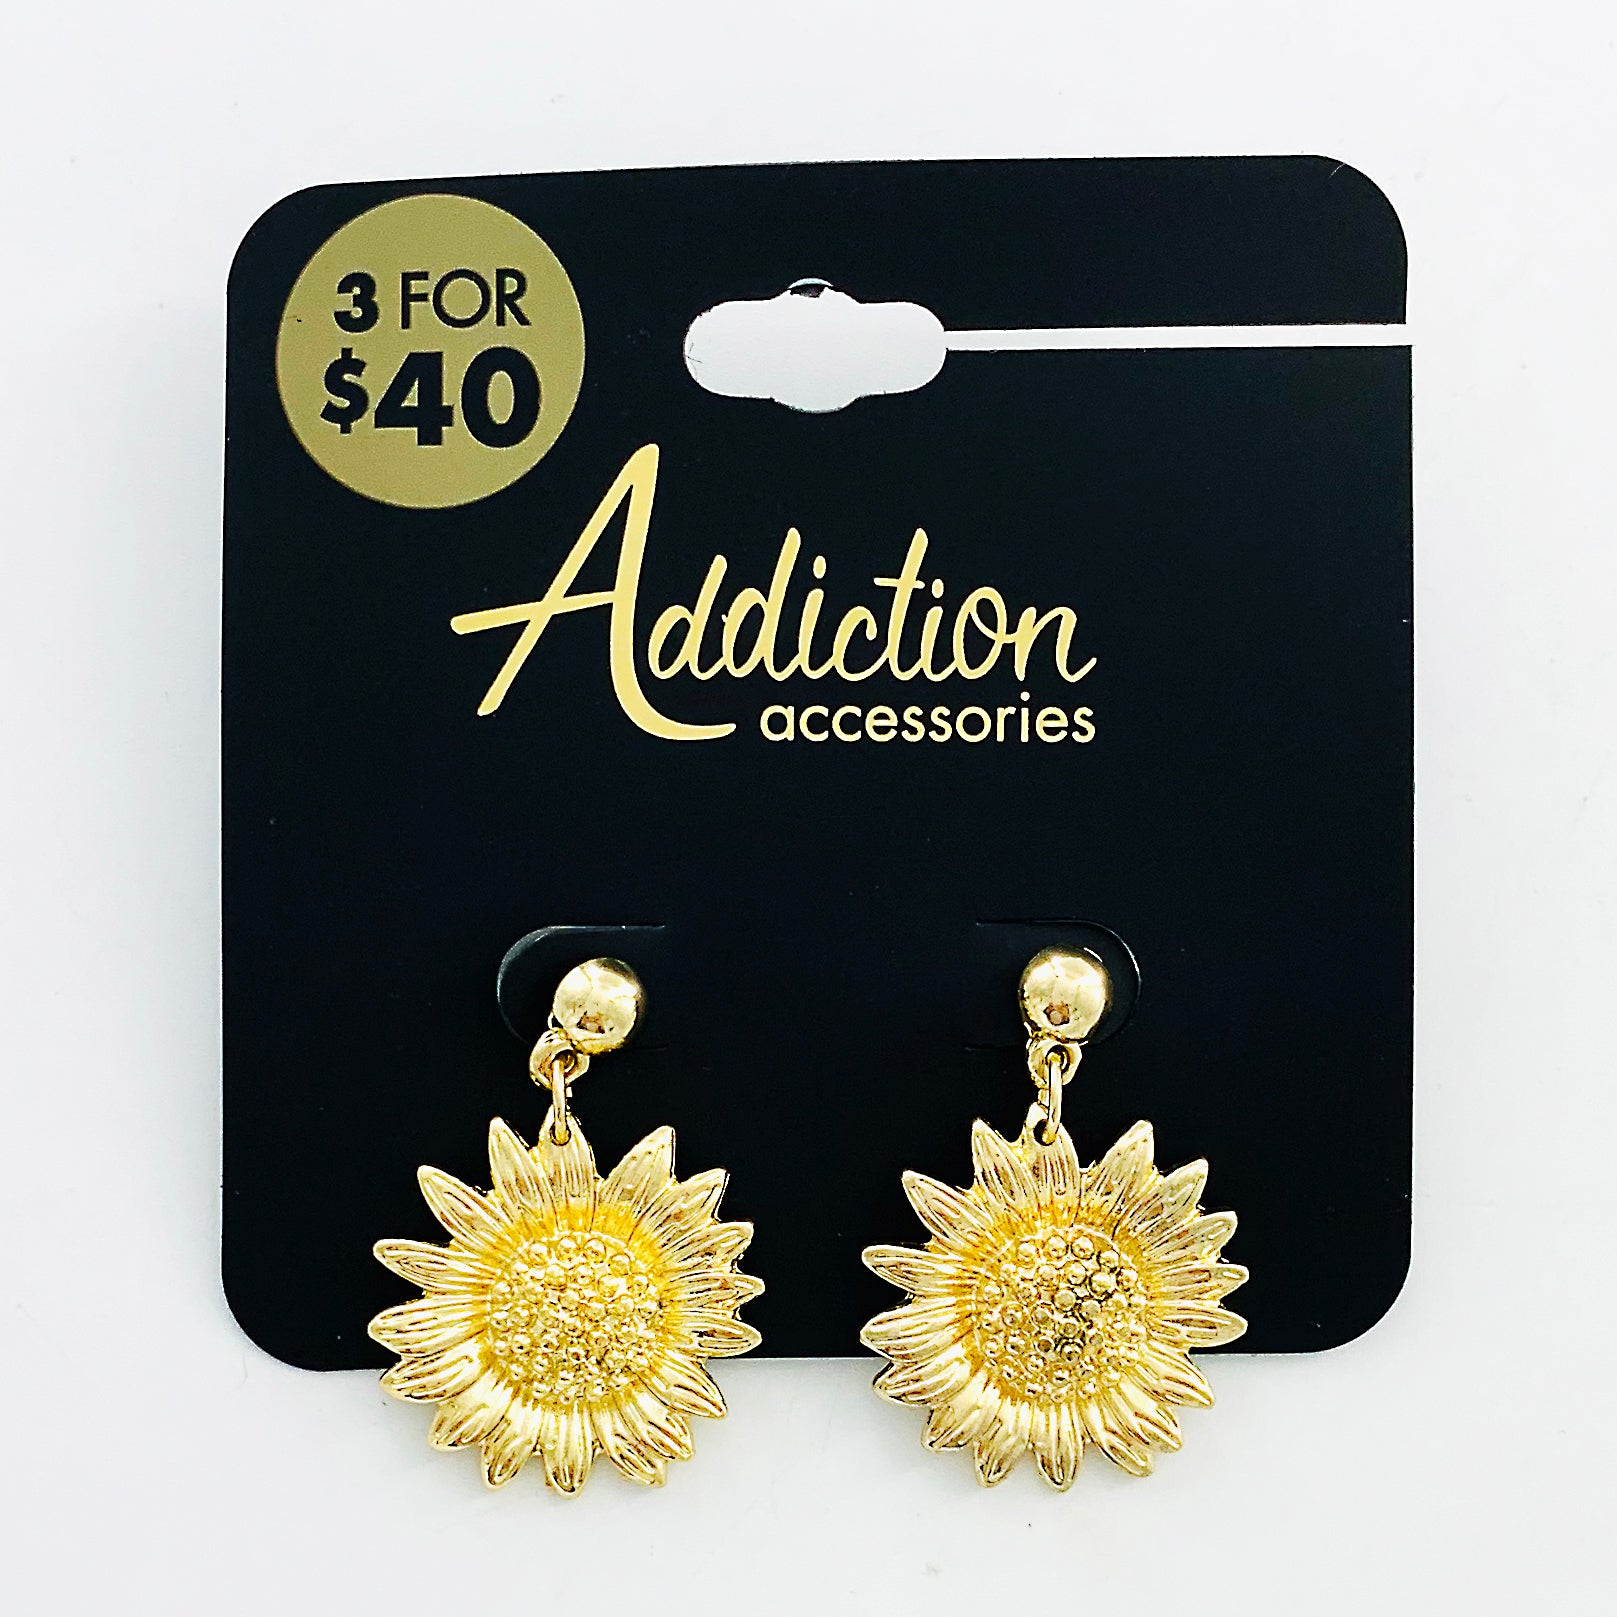 Gold metal earrings with sunflower design